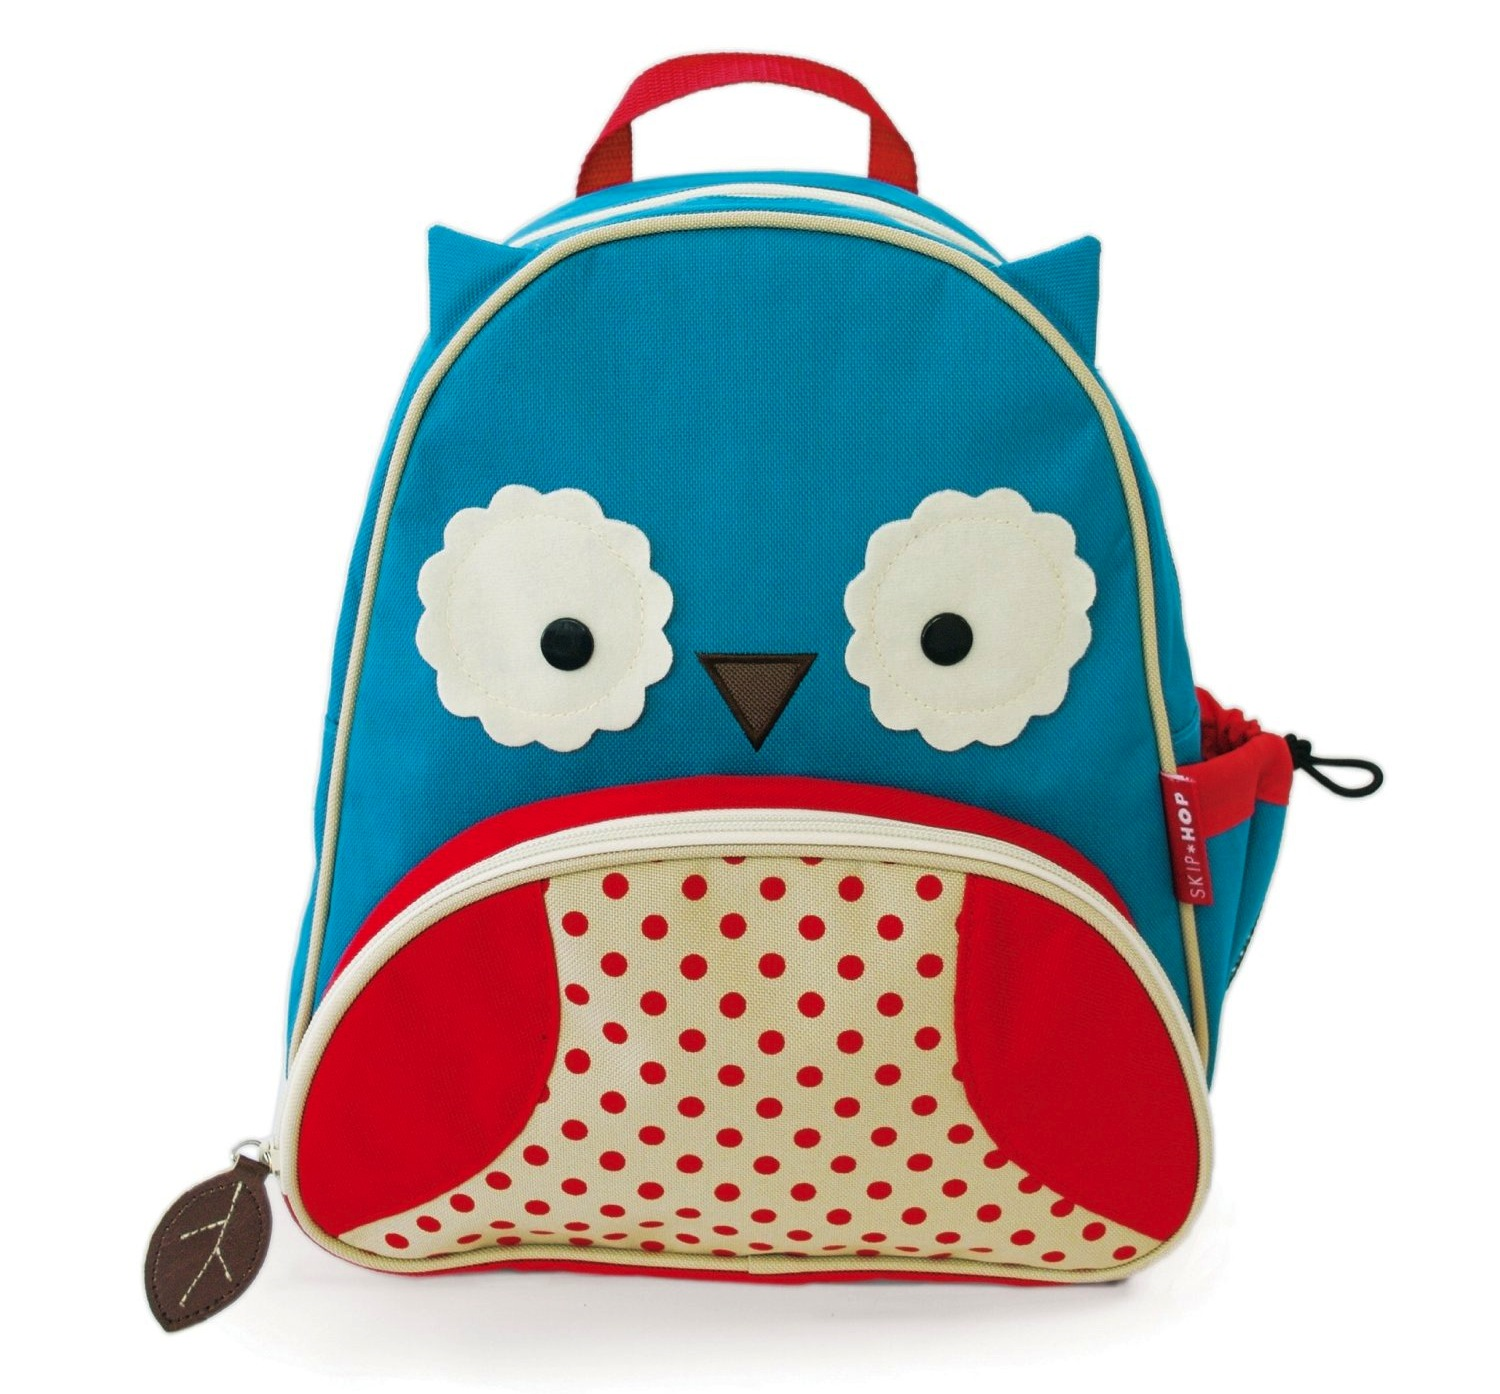 Kids Backpacks For School yJDDsGu8